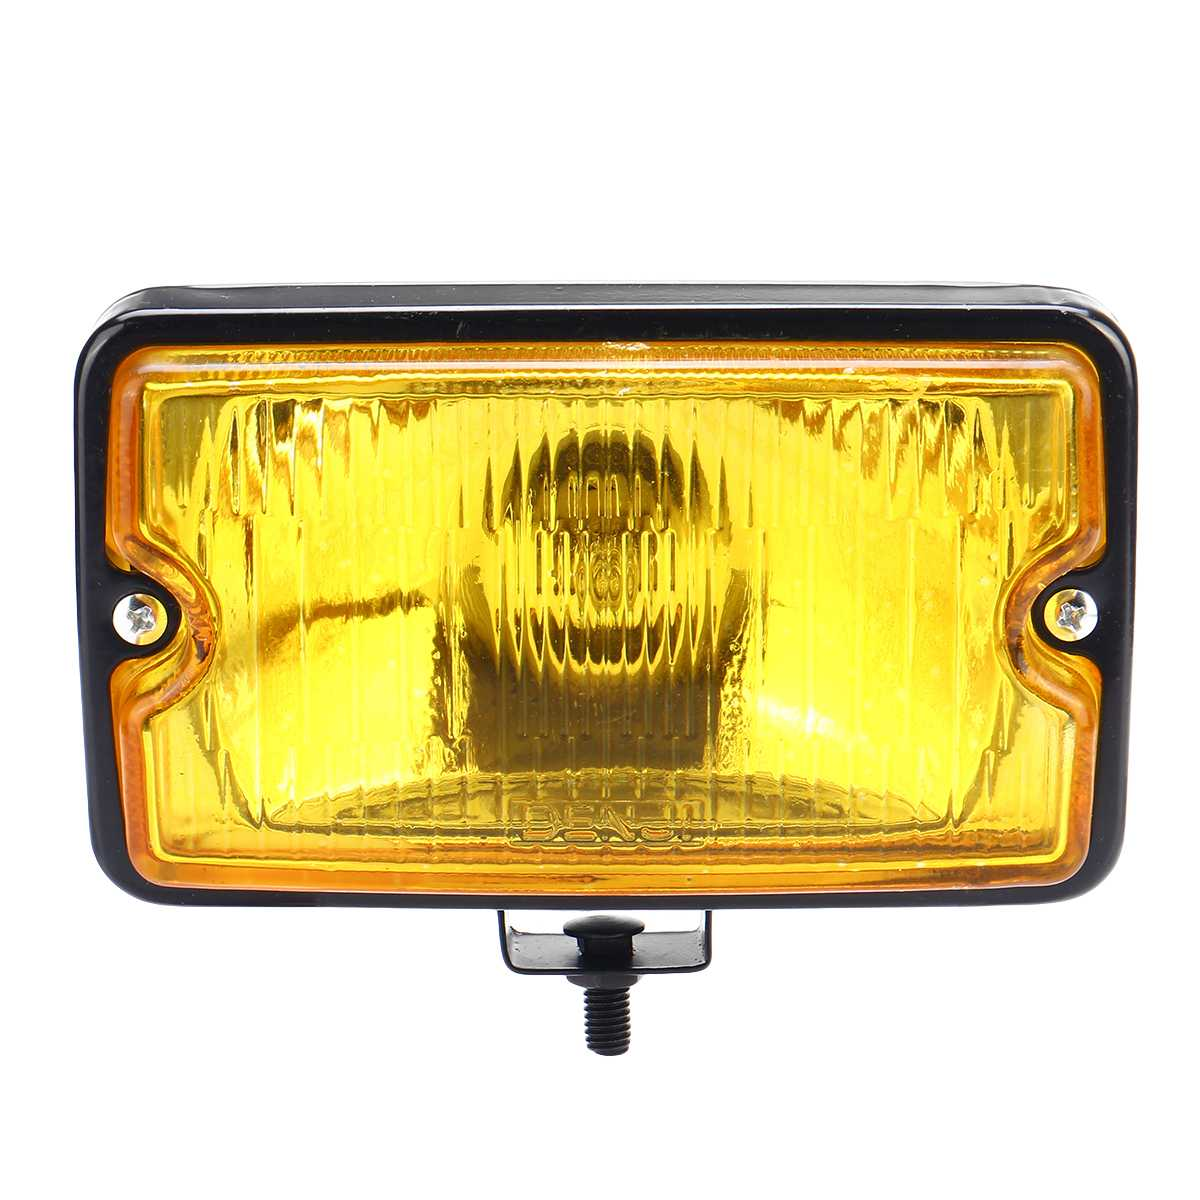 Peugeot 309 GTI driving lights lamp Covers X 4 Yellow